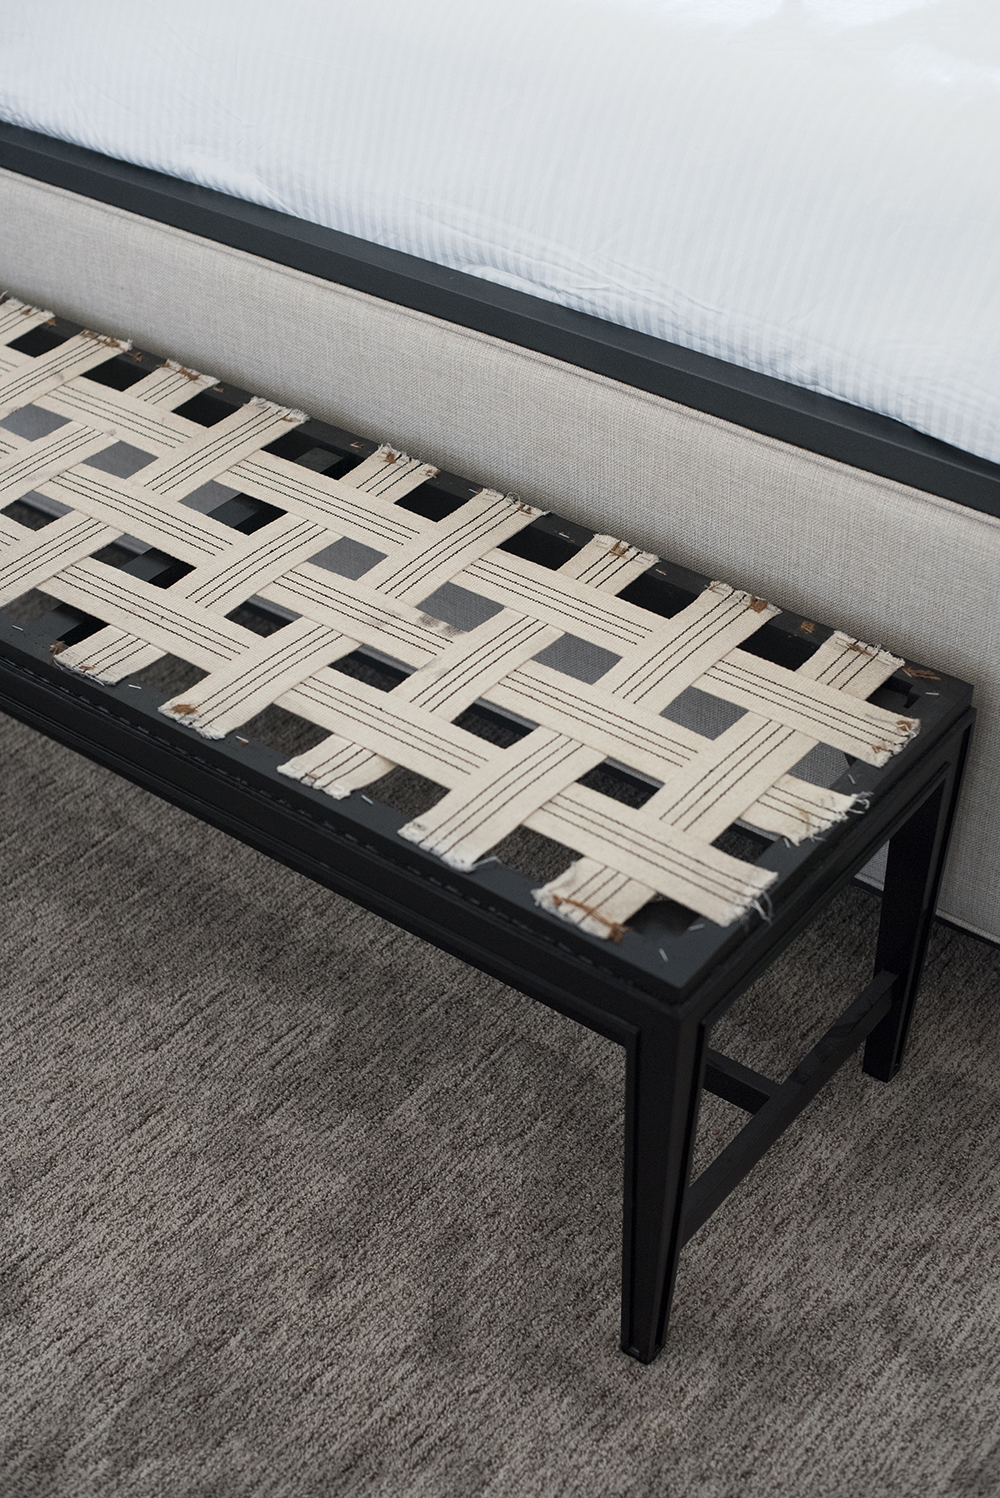 How to Upholster a Bench - roomfortuesday.com